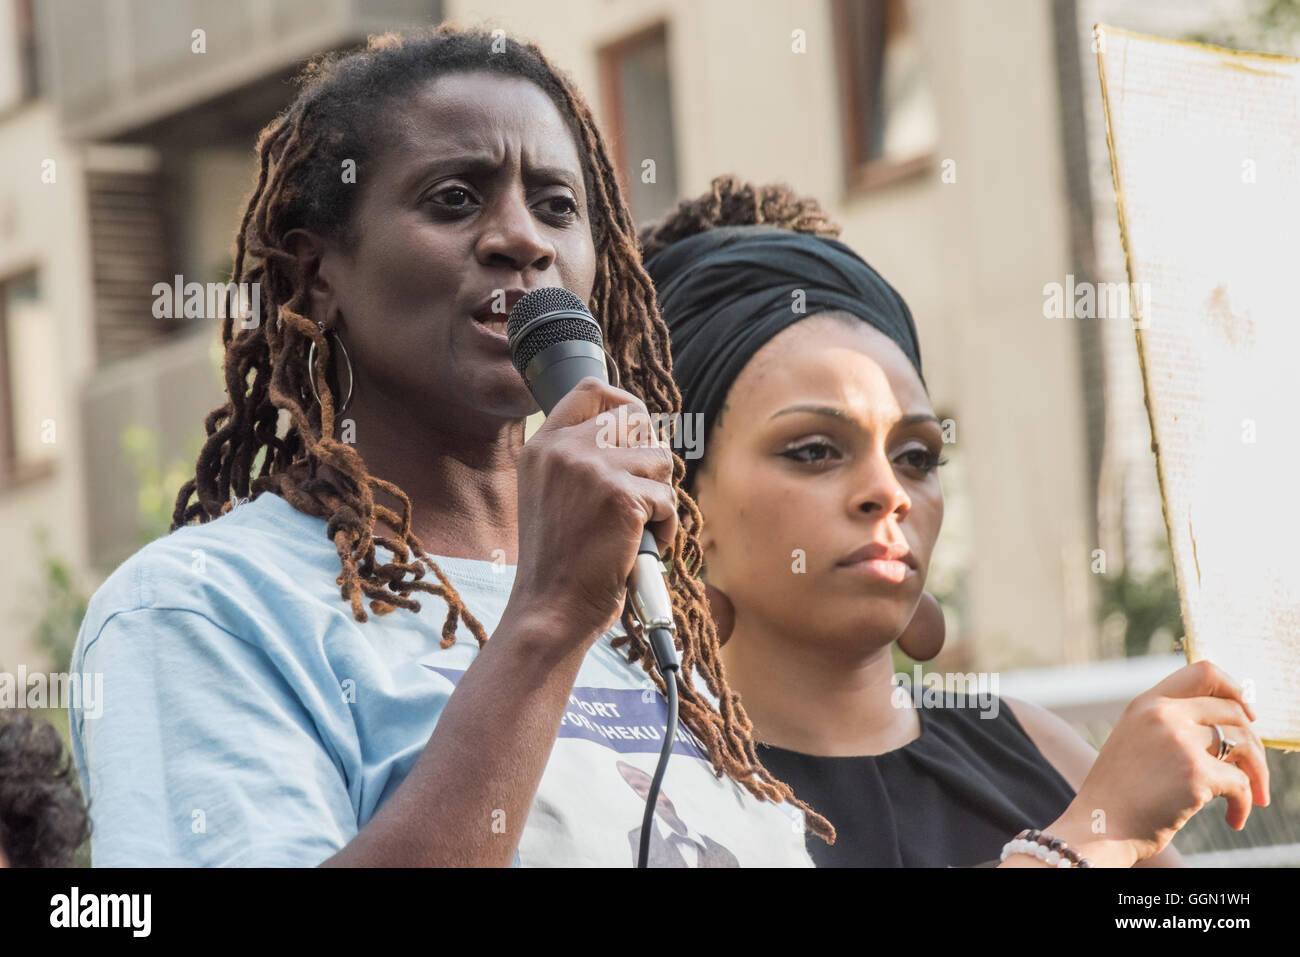 London, UK. 5th Aug, 2016. A relative of Sheku Bayoh, killed by police in Scotland in 2015 speaks at the rally five - Stock Image